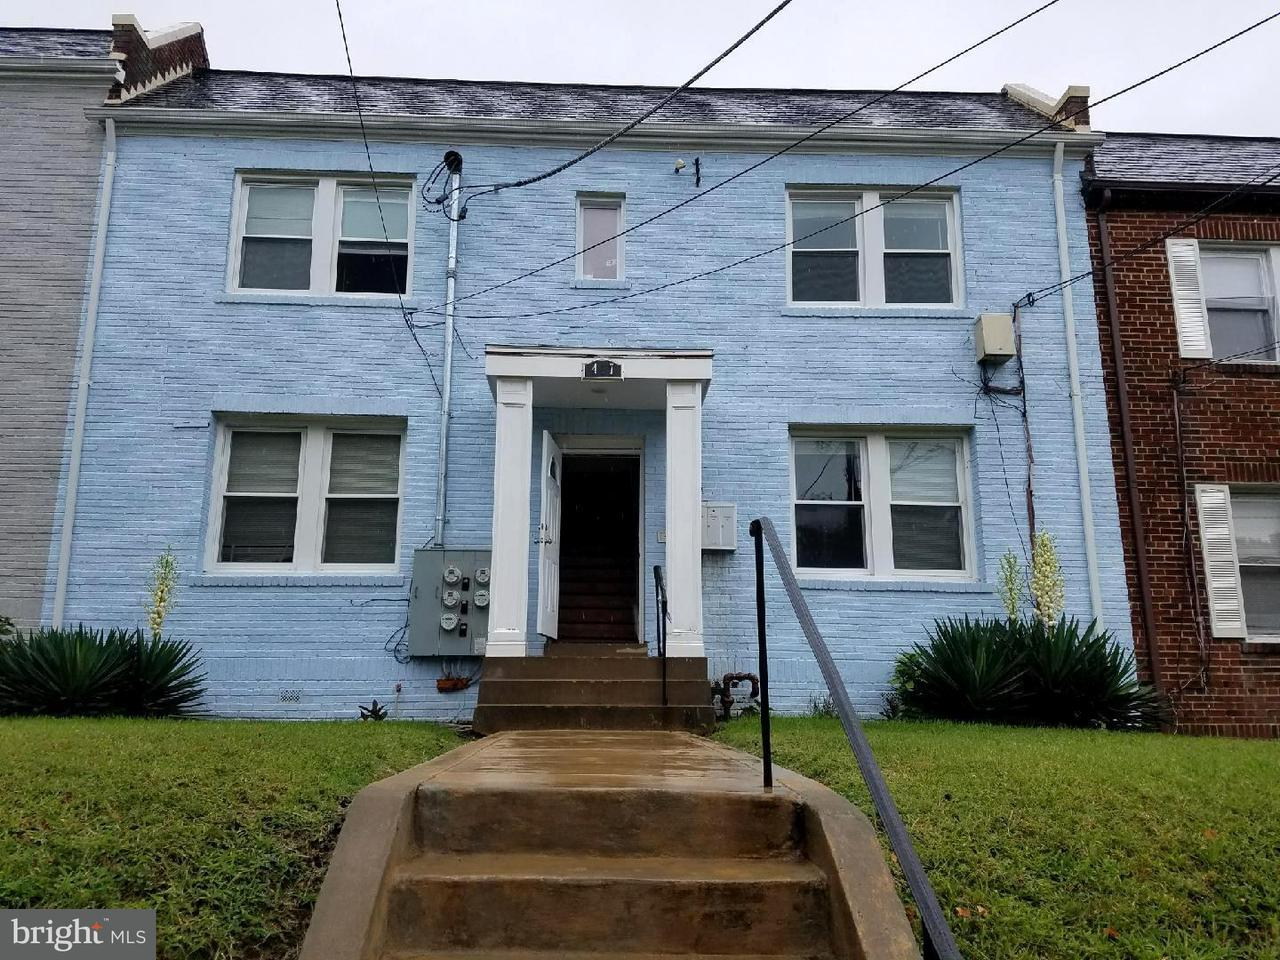 Other Residential for Sale at 417 Evarts St NE Washington, District Of Columbia 20017 United States